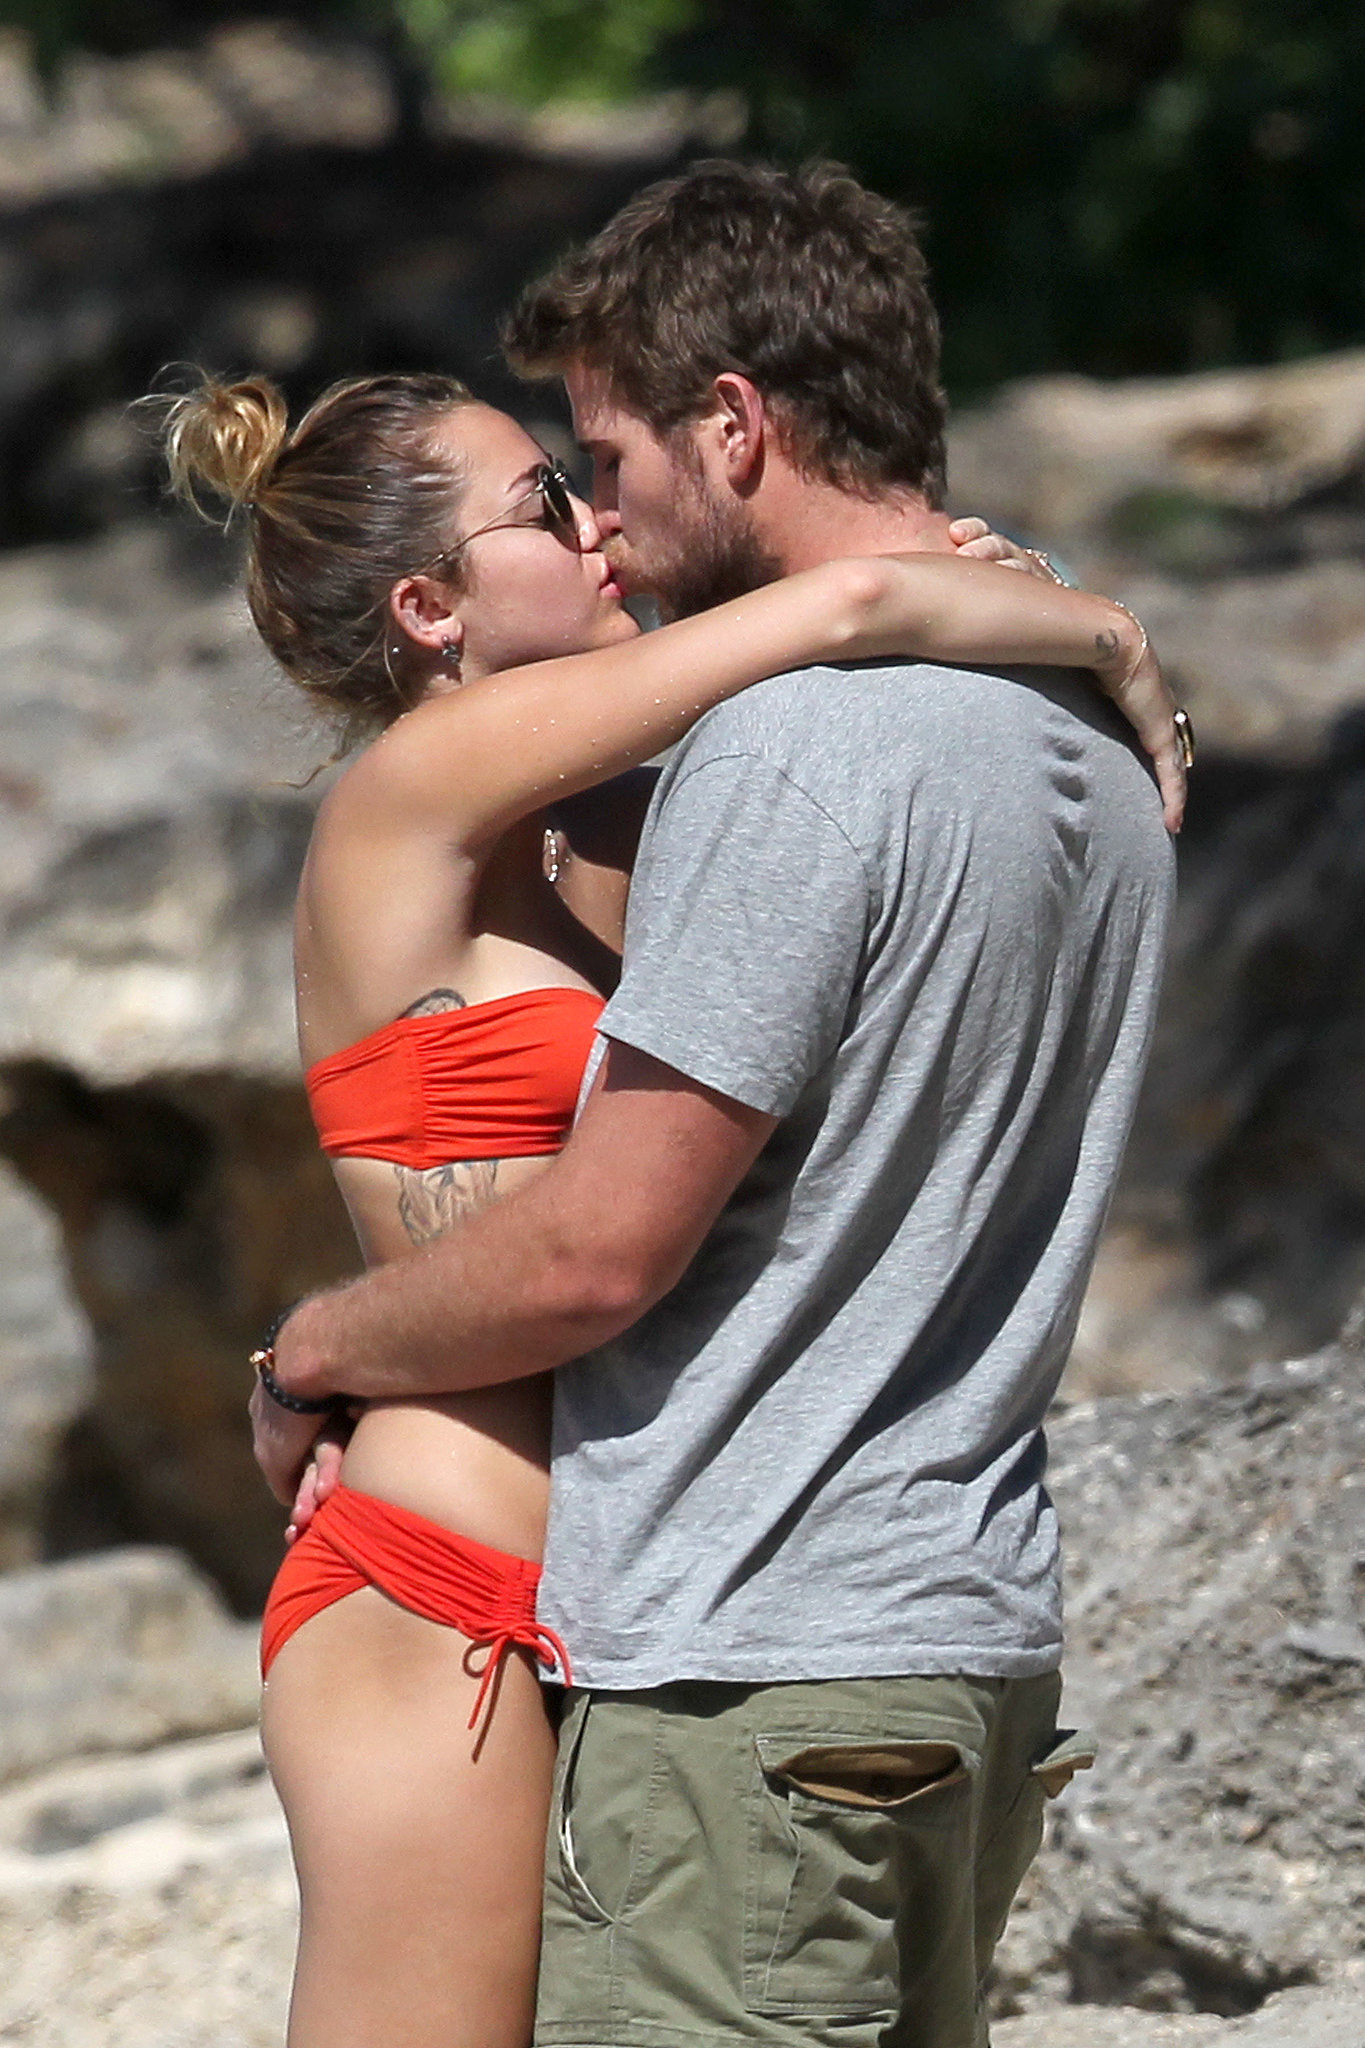 Then-couple Miley Cyrus and